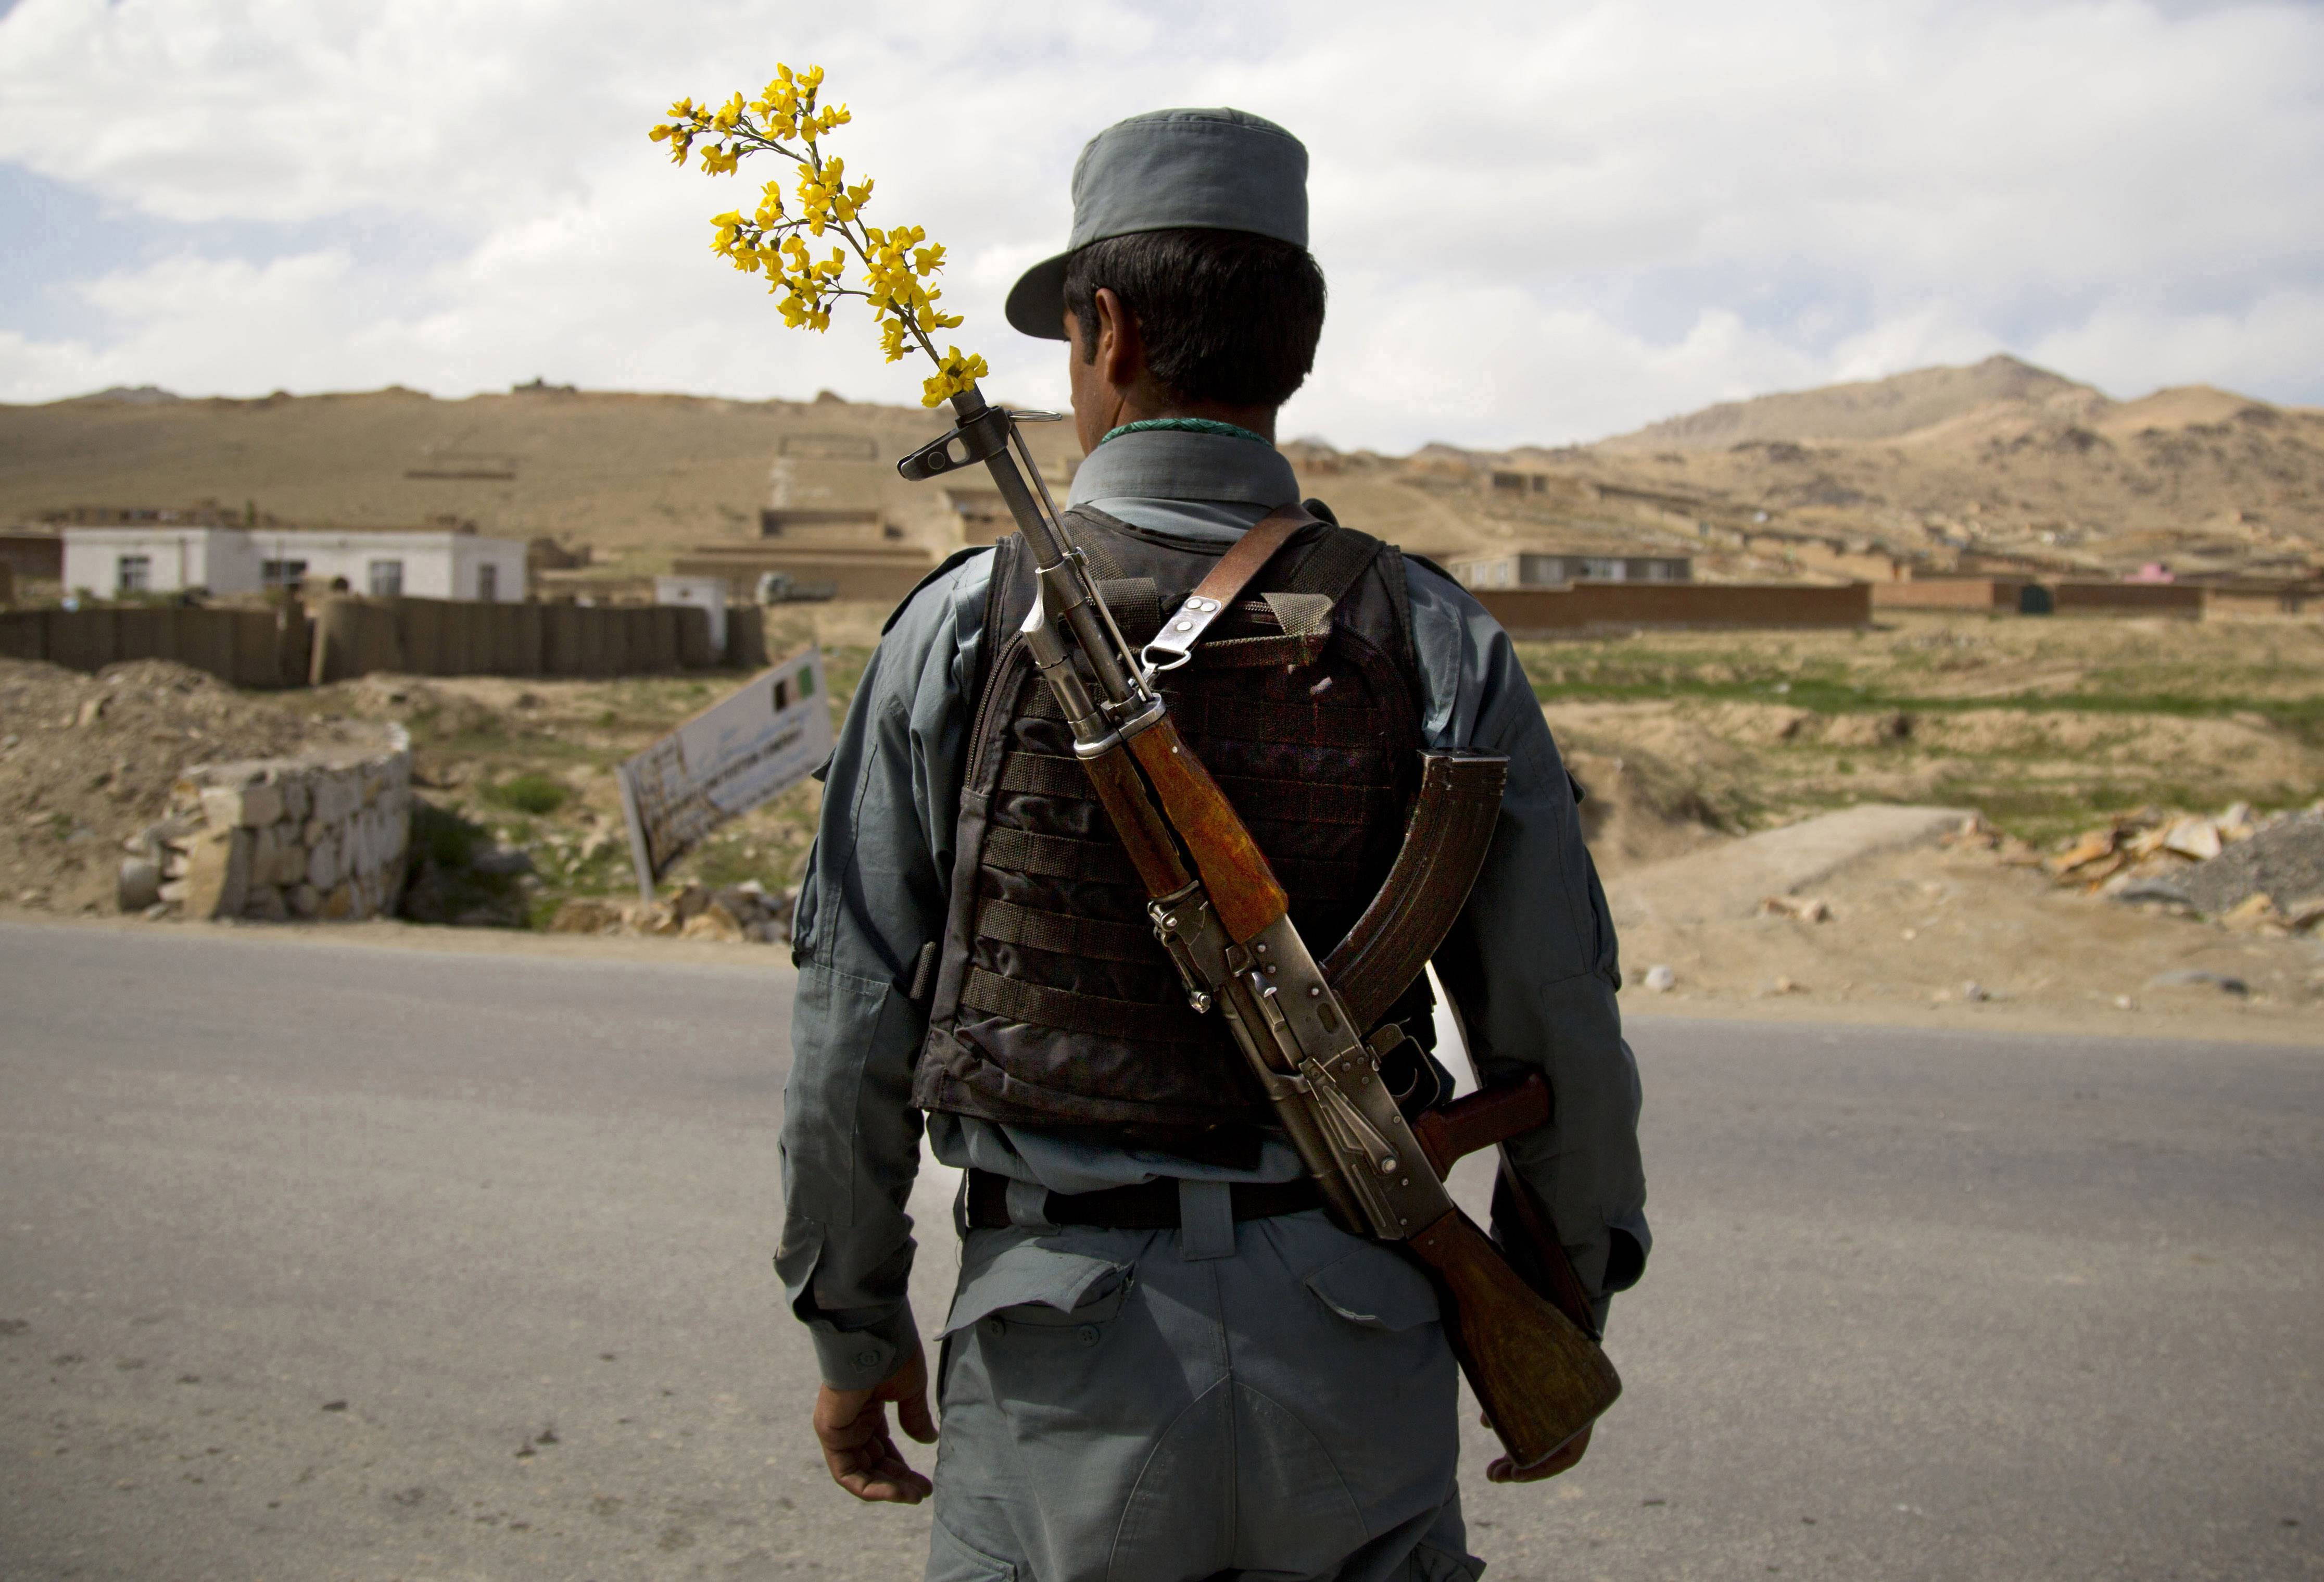 In this Wednesday, May 15, 2013 file photo made by Associated Press photographer Anja Niedringhaus, an Afghan National Police officer mans a checkpoint in the outskirts of Maydan Shahr, Wardak province, Afghanistan.